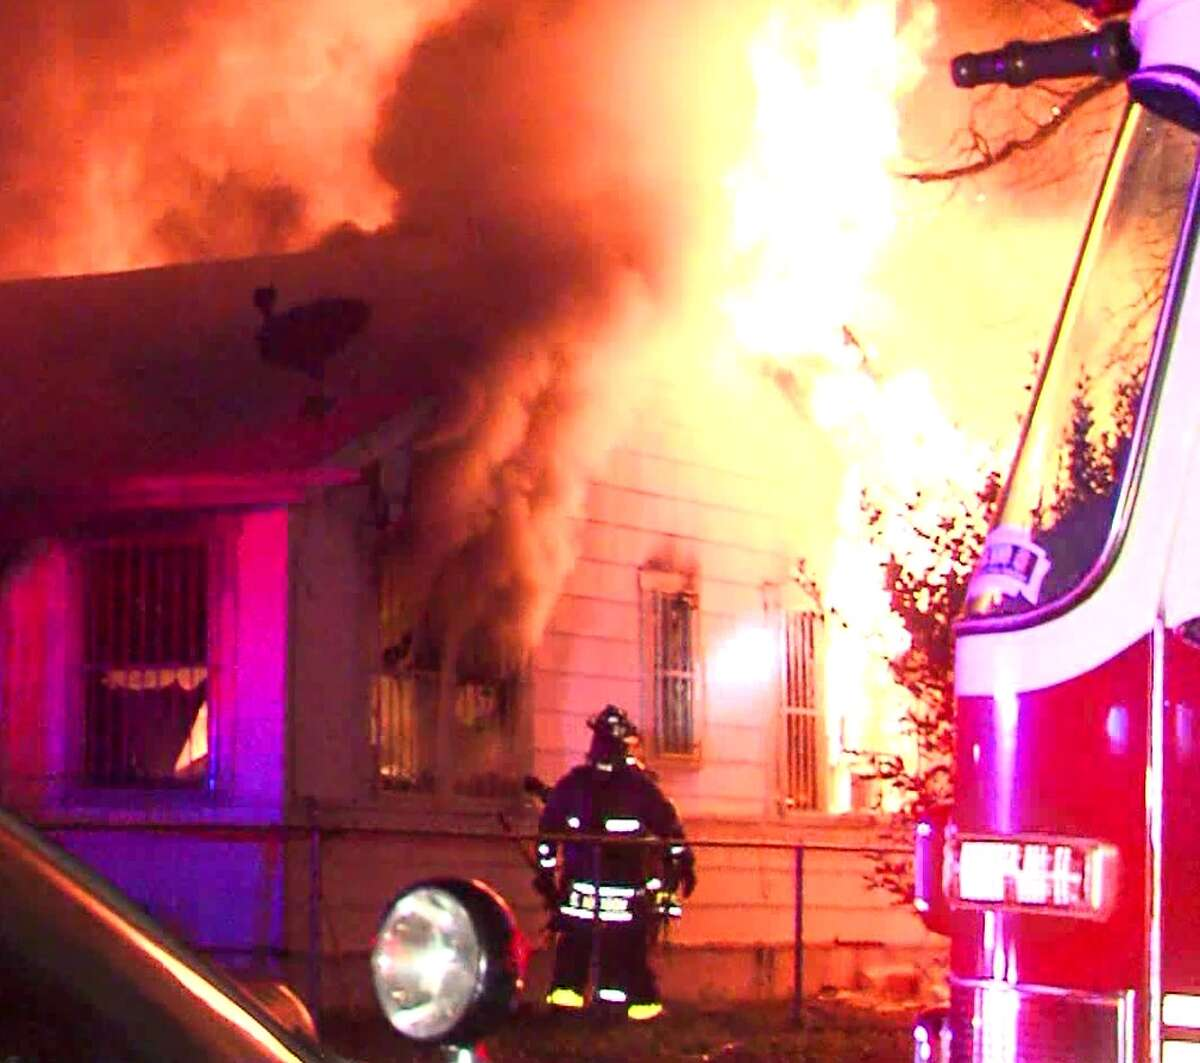 An 80-year-old man died Monday morning after his home erupted in flames on the Northwest Side.